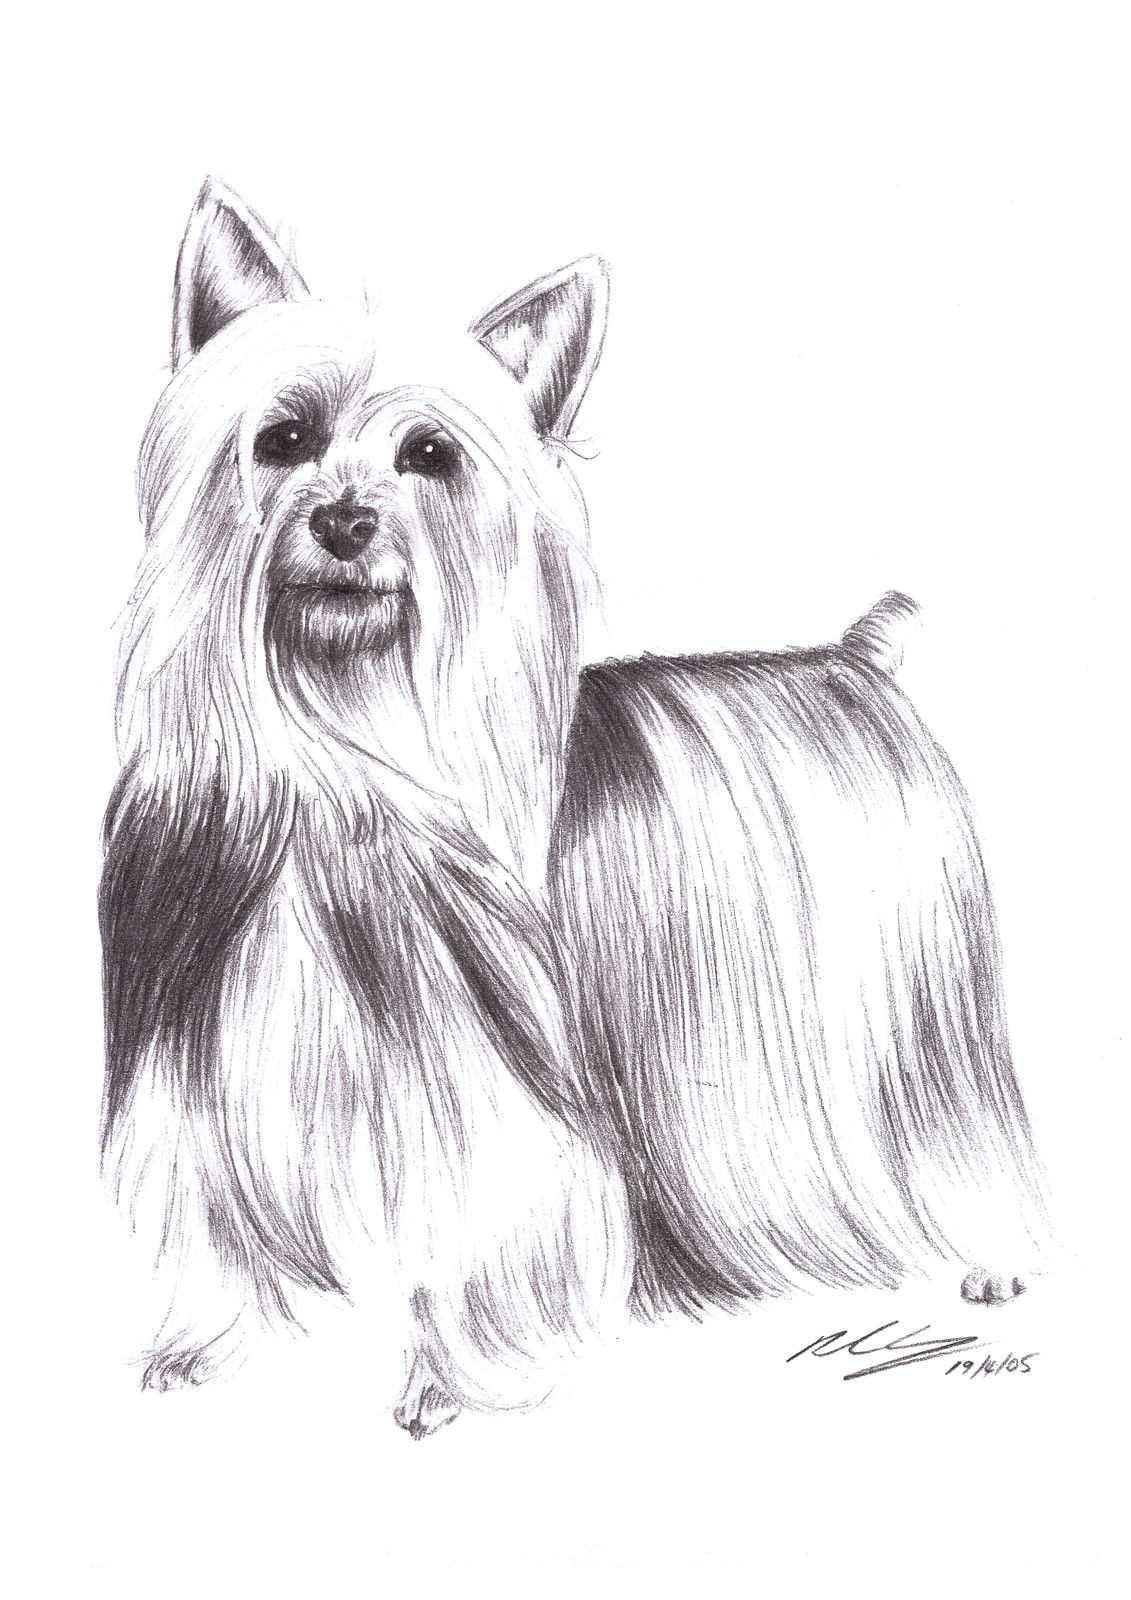 9 5 aud silky terrier dog standing pet pencil art signed a4 giclee print ebay collectibles